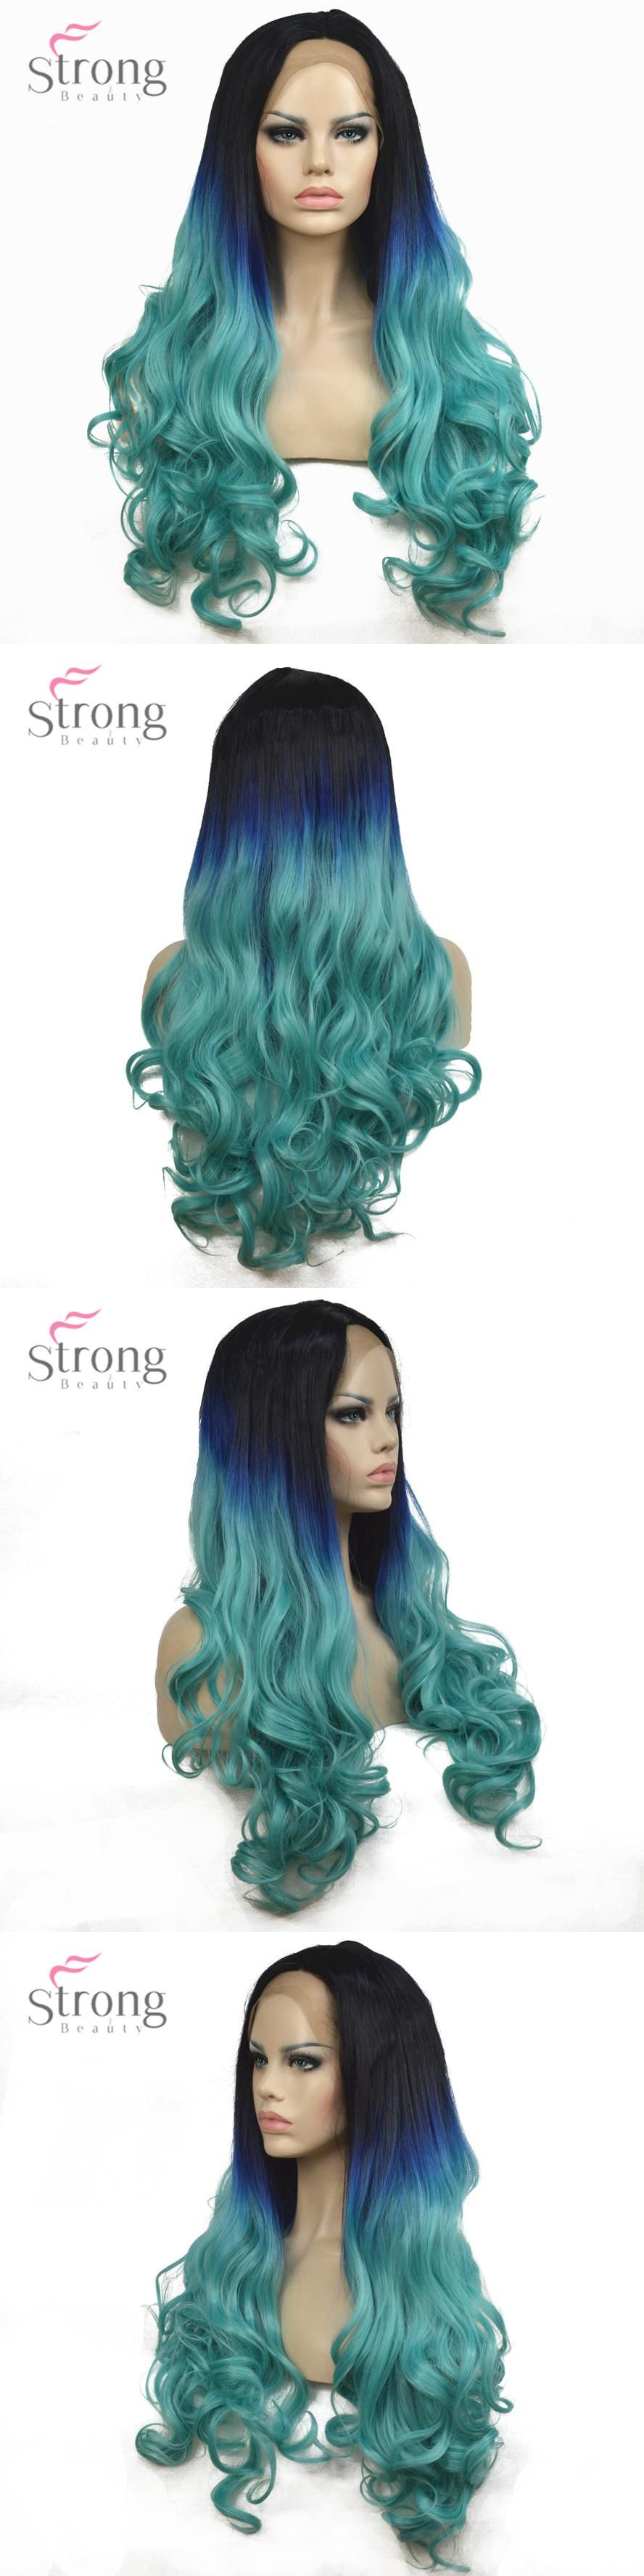 Strongbeauty womenus lace front wigs ombre light blue long wavy hair